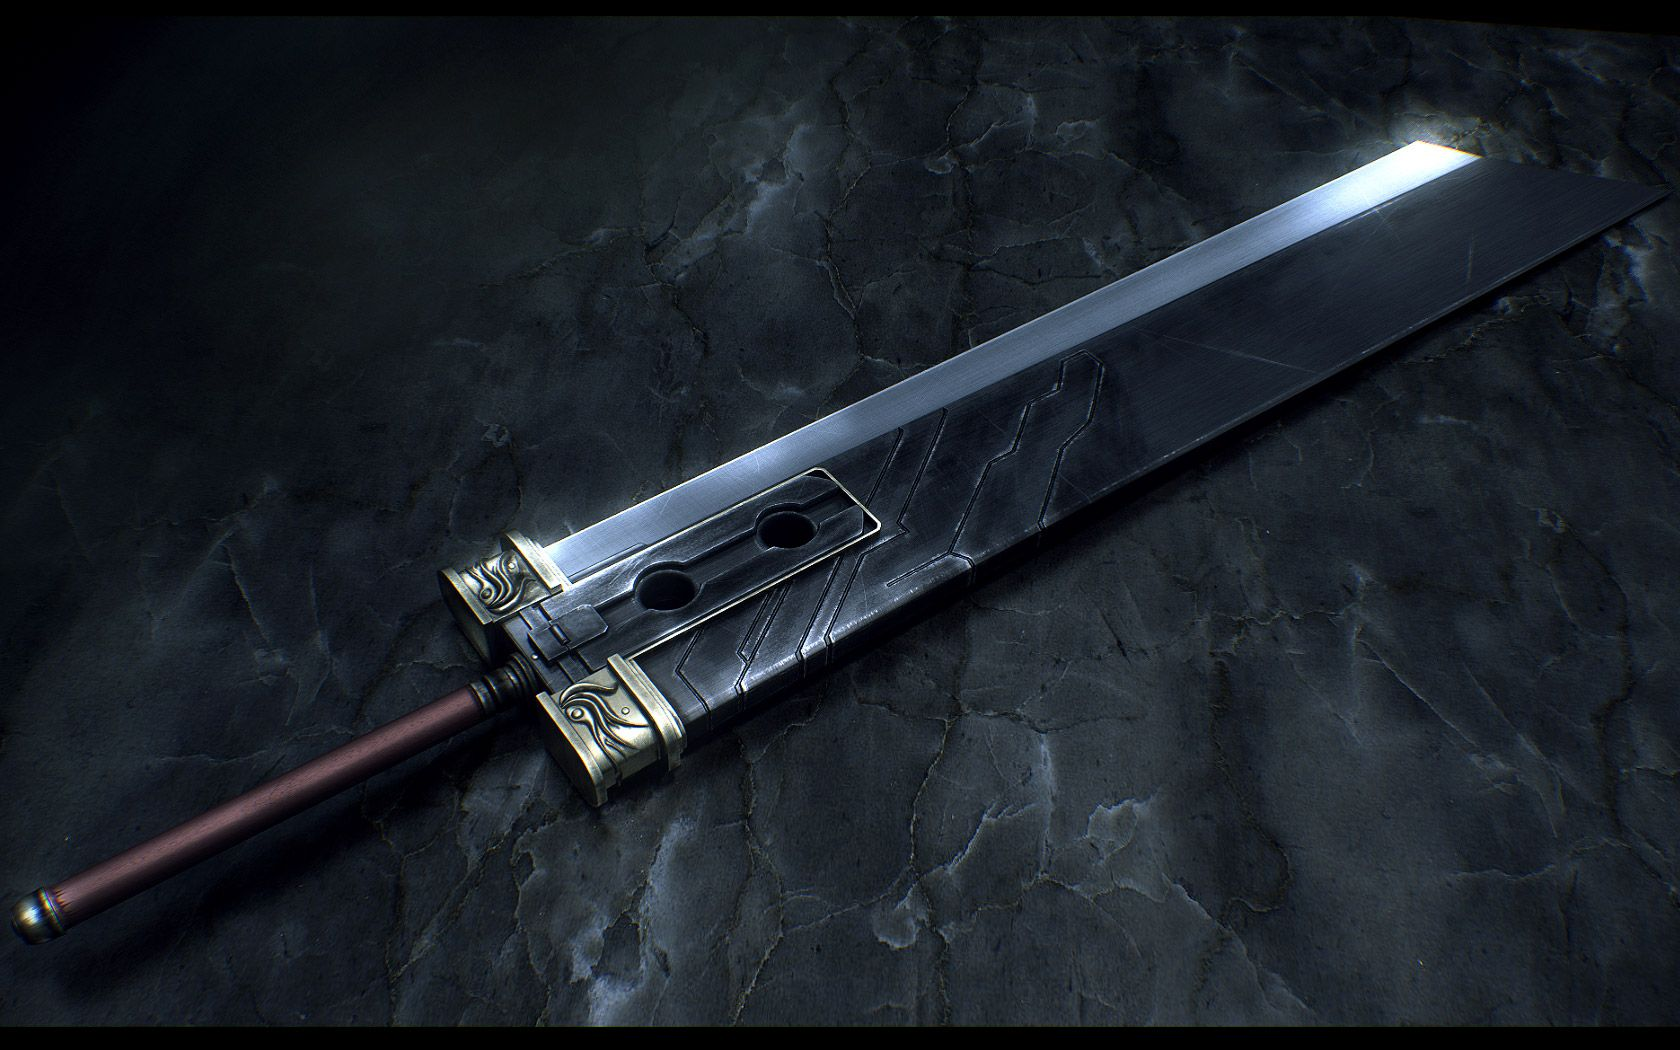 top 10 swords in video games | sword and gaming